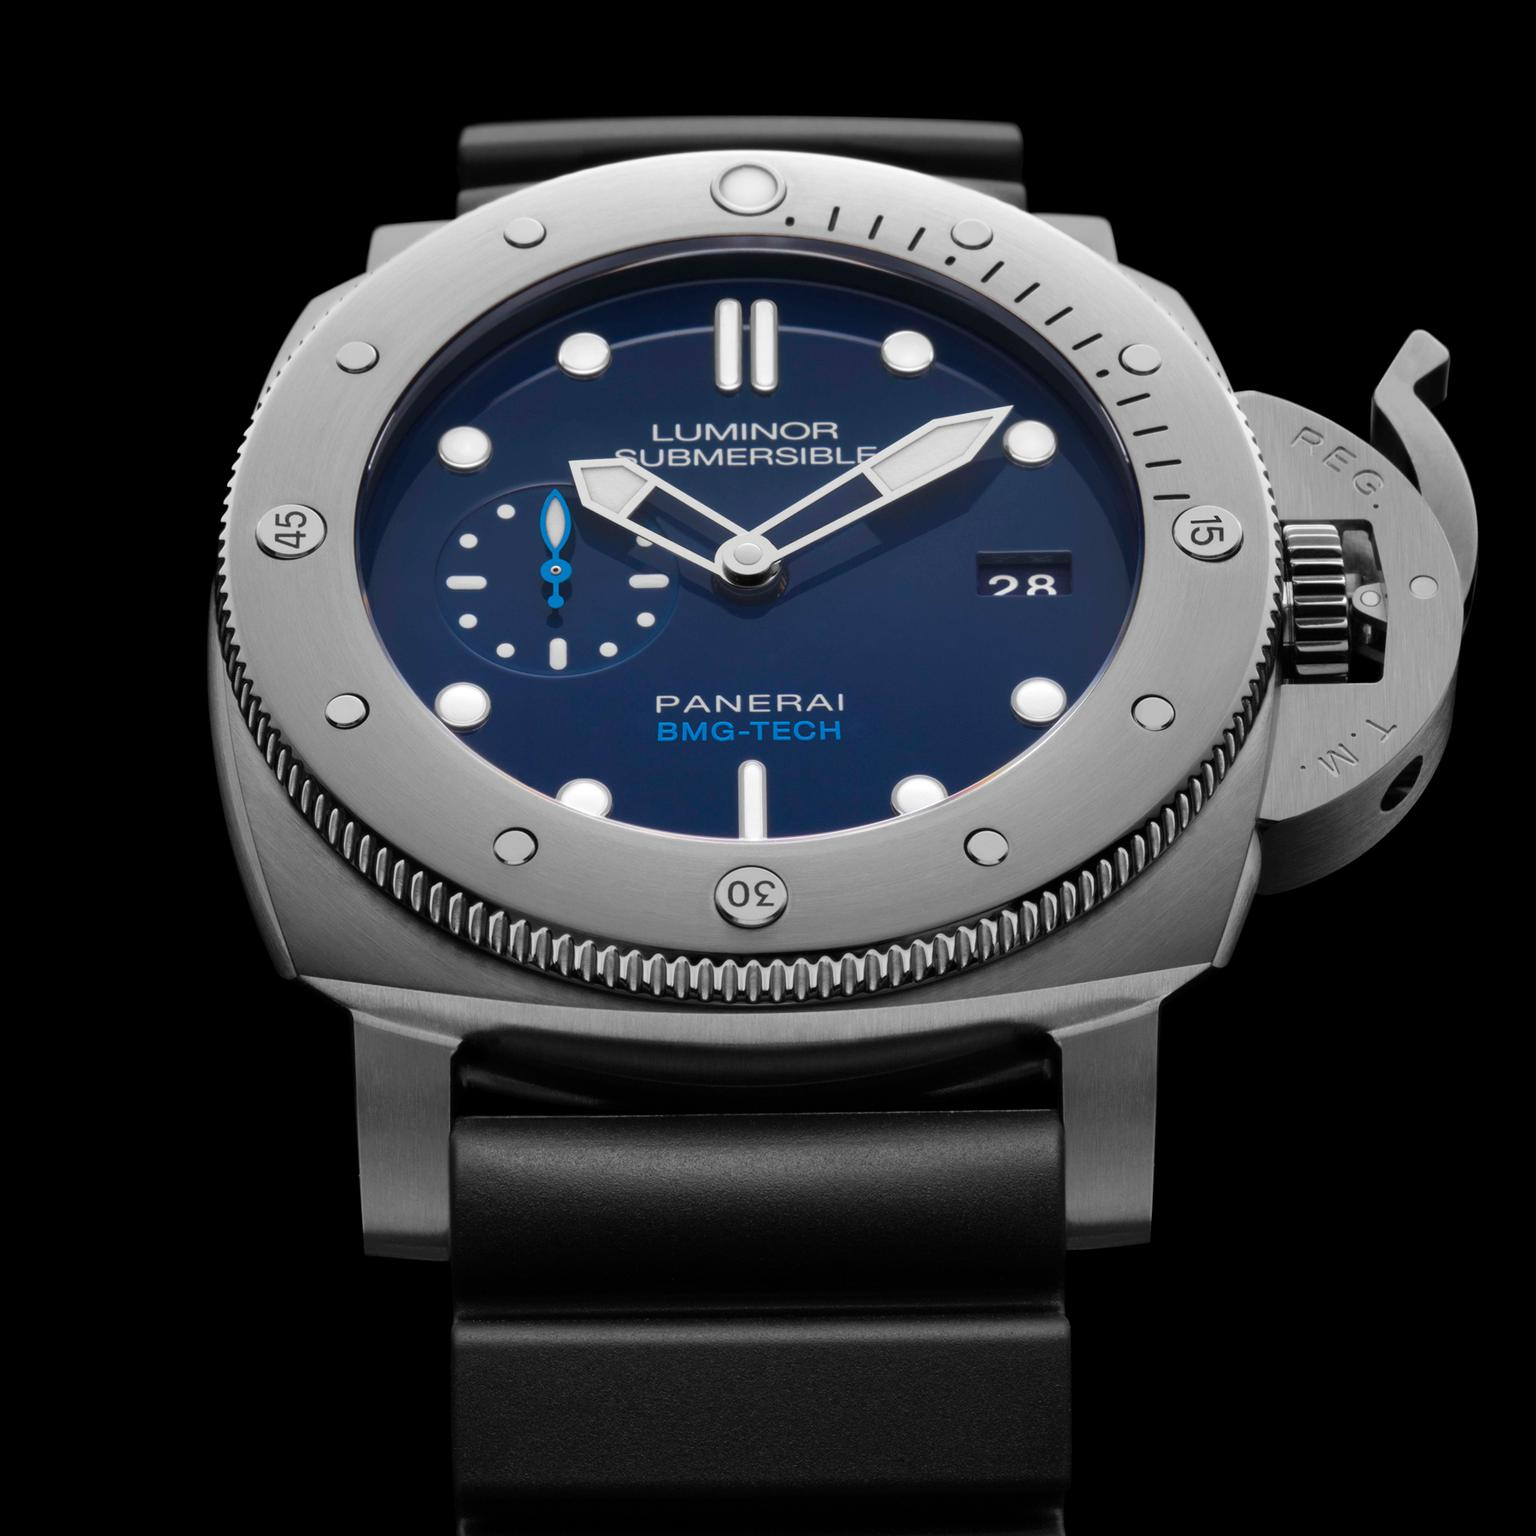 Panerai Luminor Submersible 1950 BMG-TECH watch